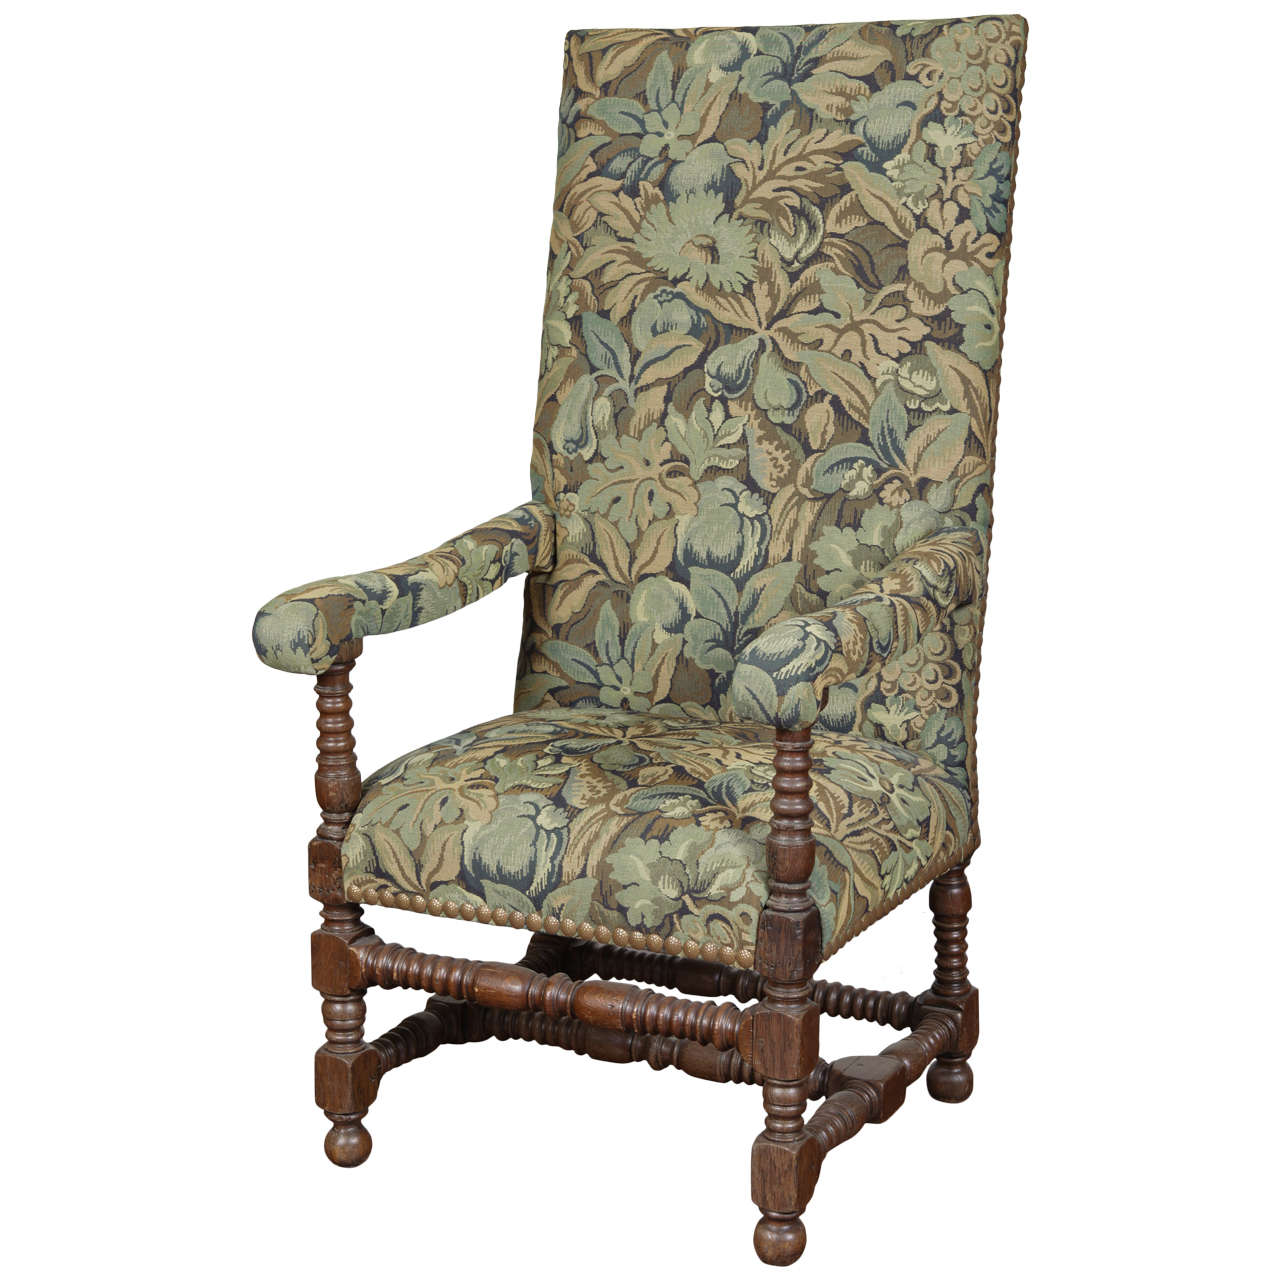 Louis XIII Style Tall-Back Armchair